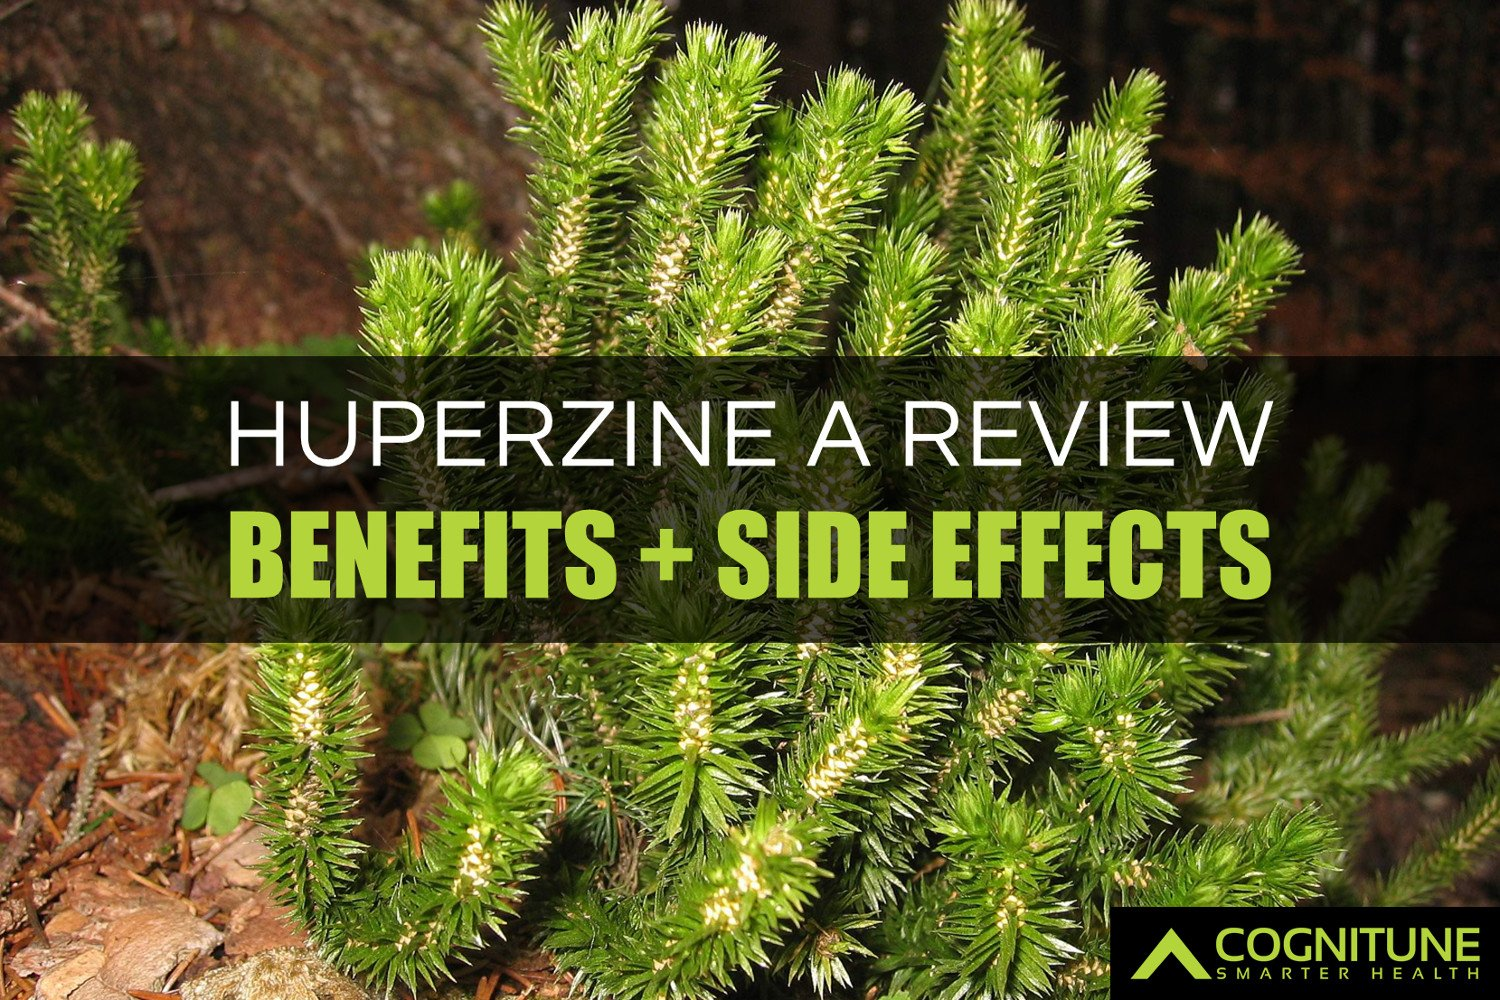 Huperzine A Review